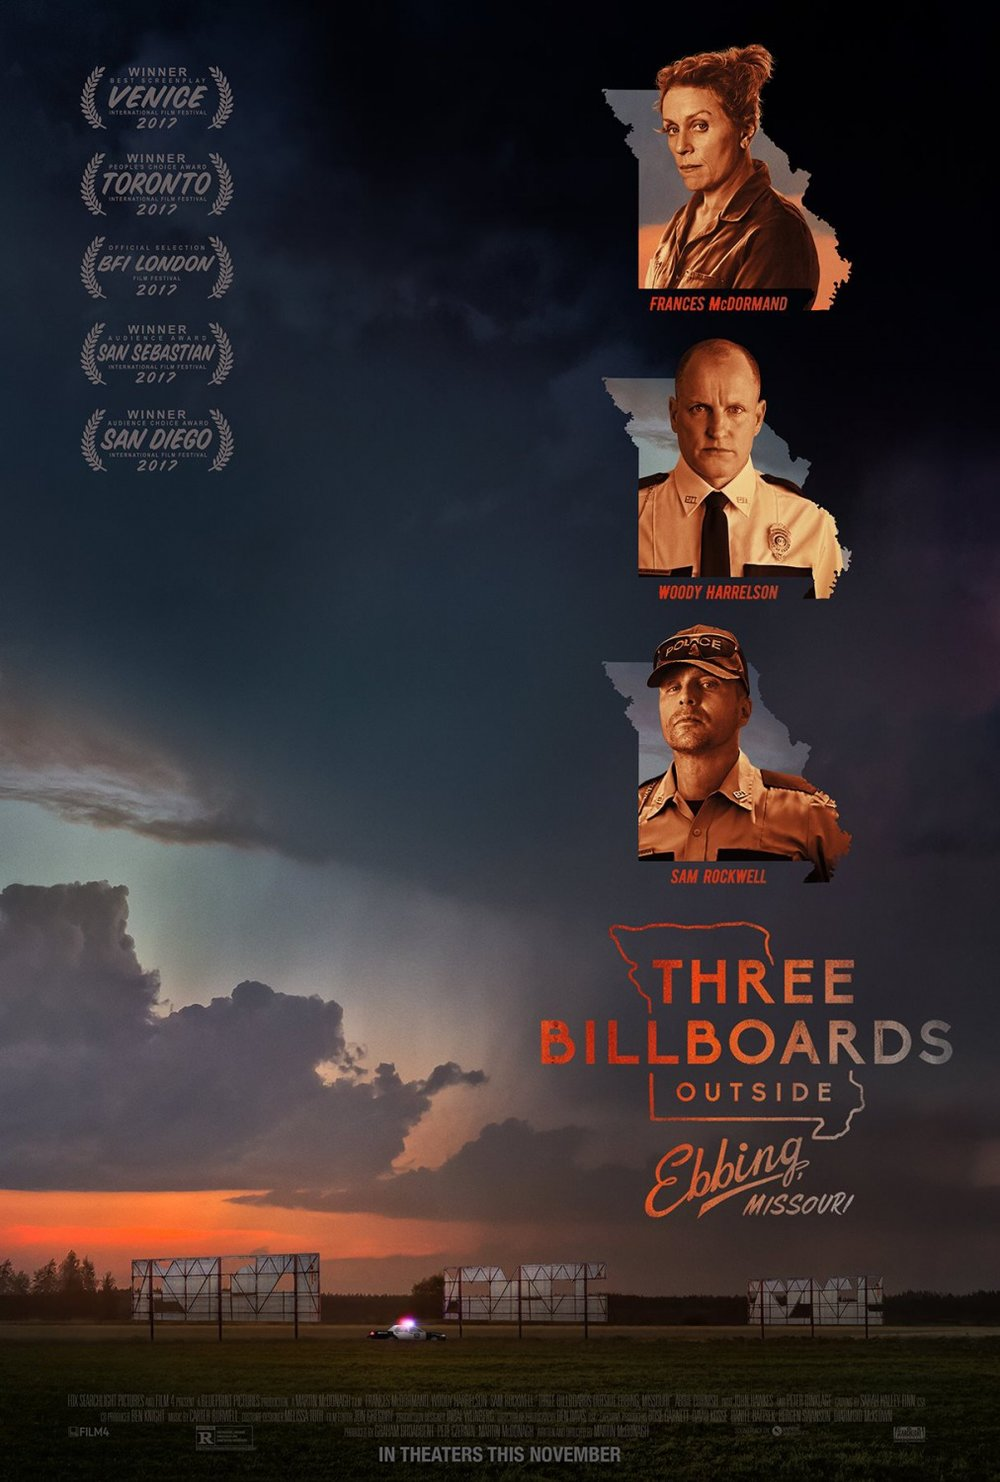 Three Billboards Outside Ebbing, Missouri   (2017) dir. Martin McDonagh Rated: R image: ©2017  Fox Searchlight Pictures